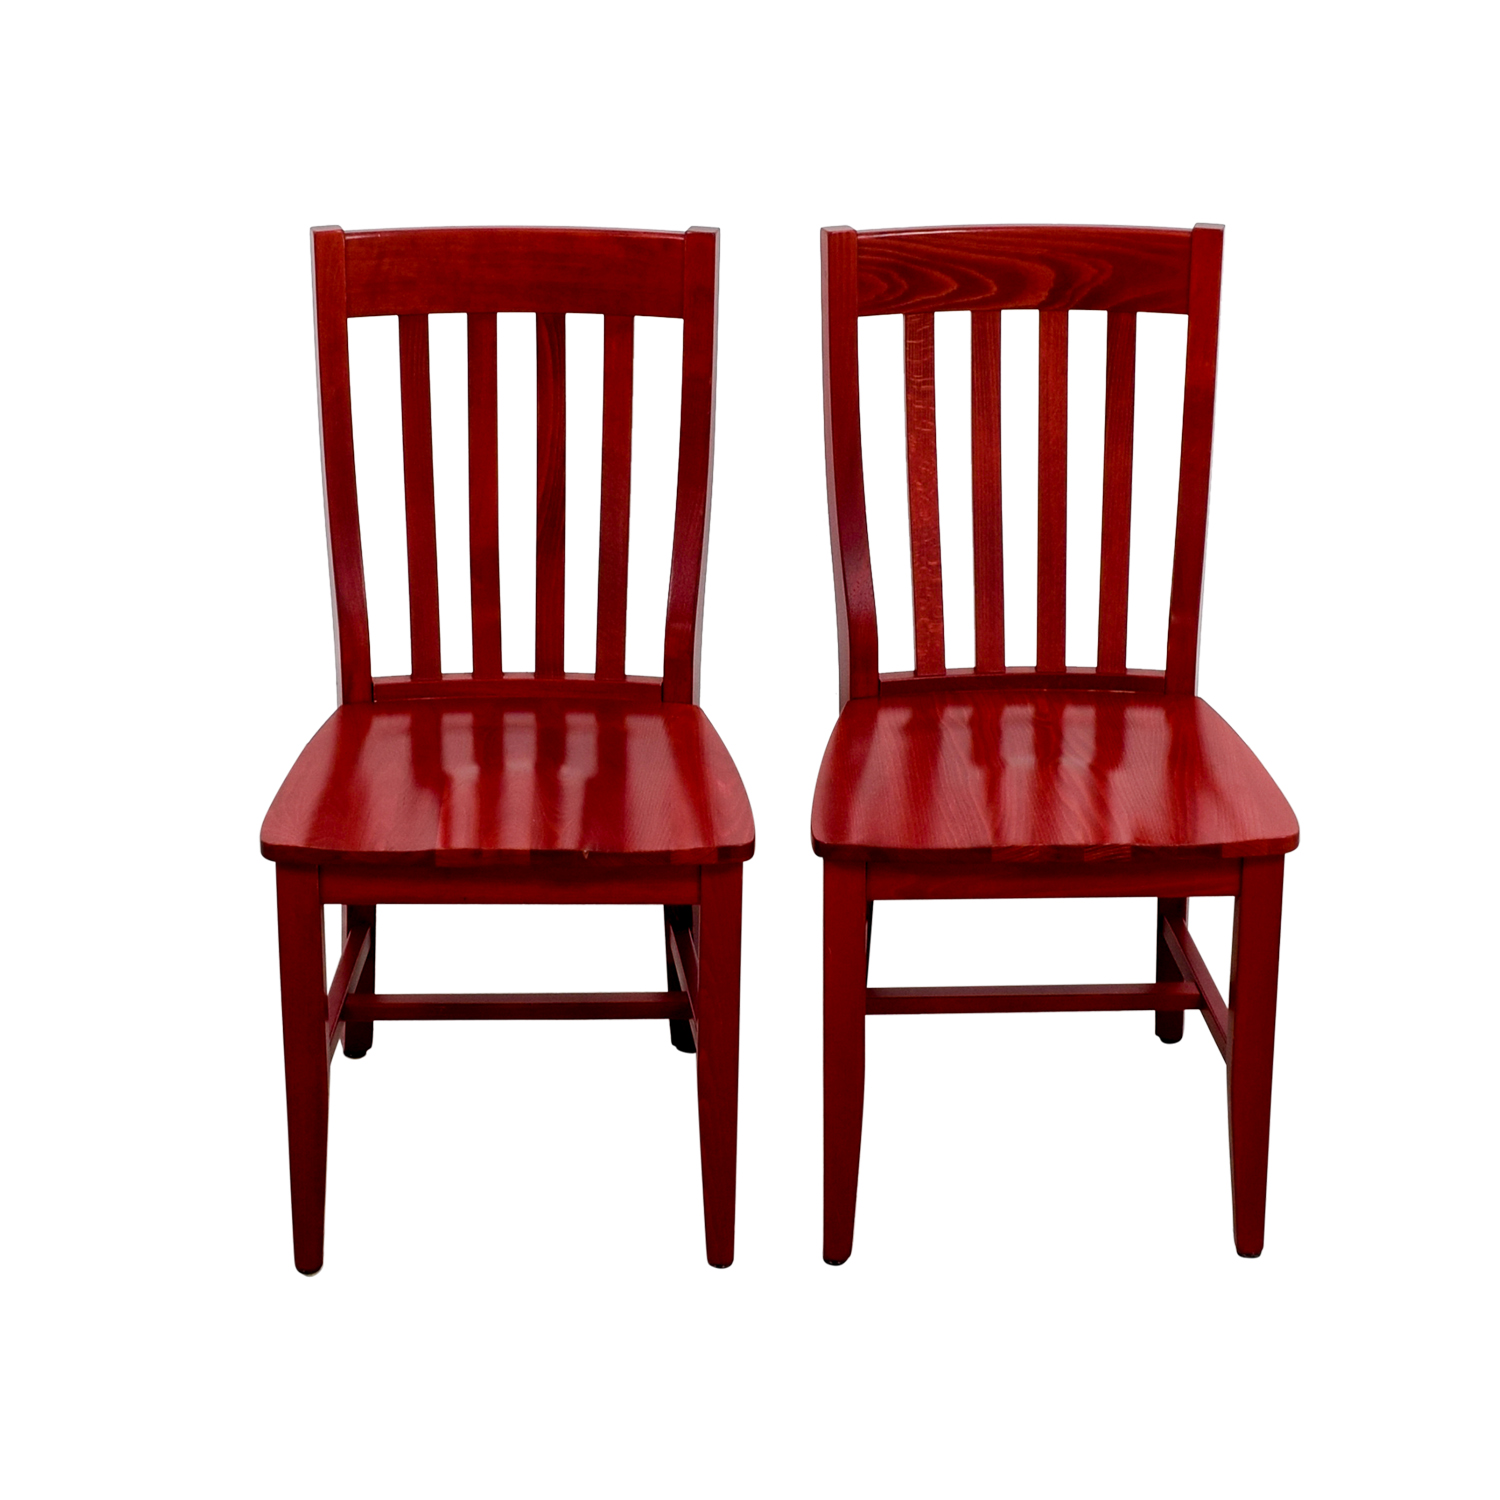 79 off pottery barn pottery barn schoolhouse chairs chairs - Pottery barn schoolhouse chairs ...